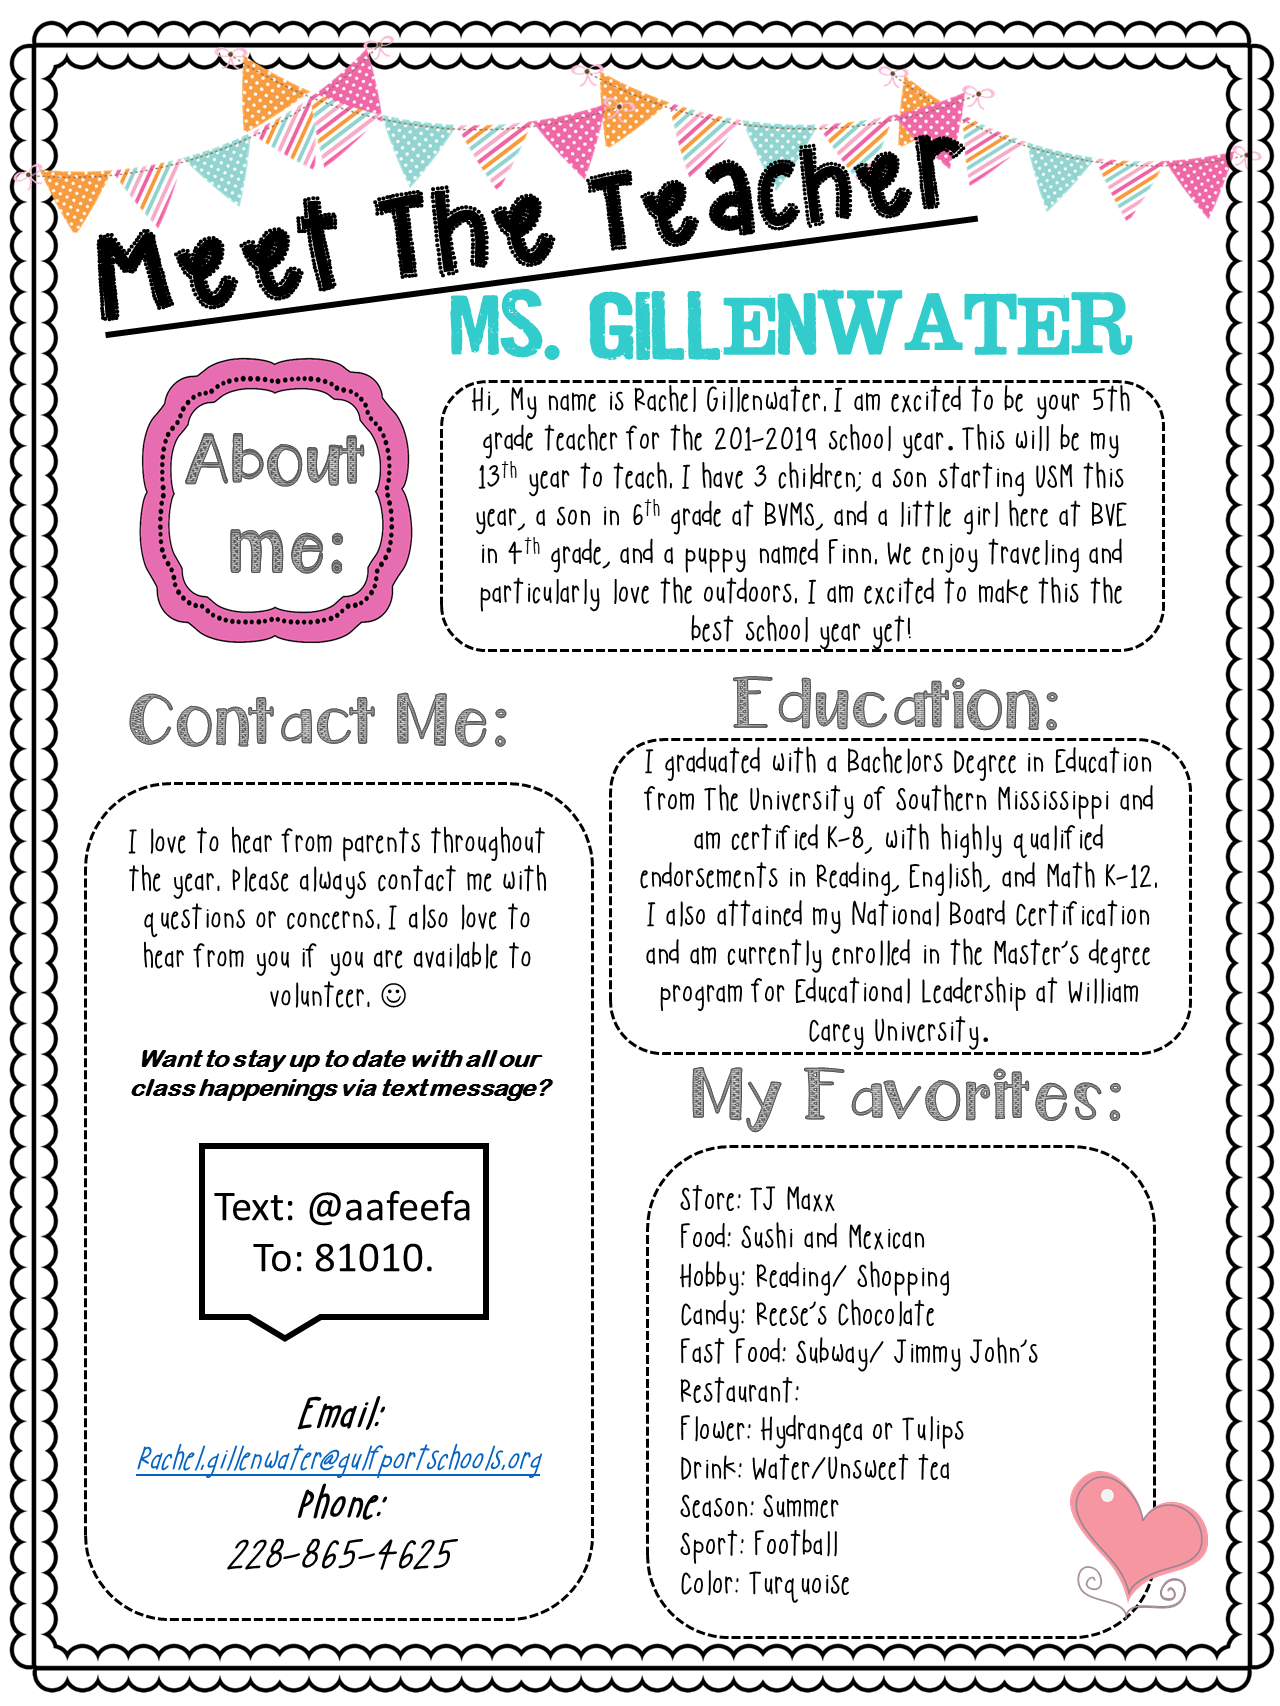 Gillenwater, Rachel - 5th Grade ELA/Social Studies / Teacher Page